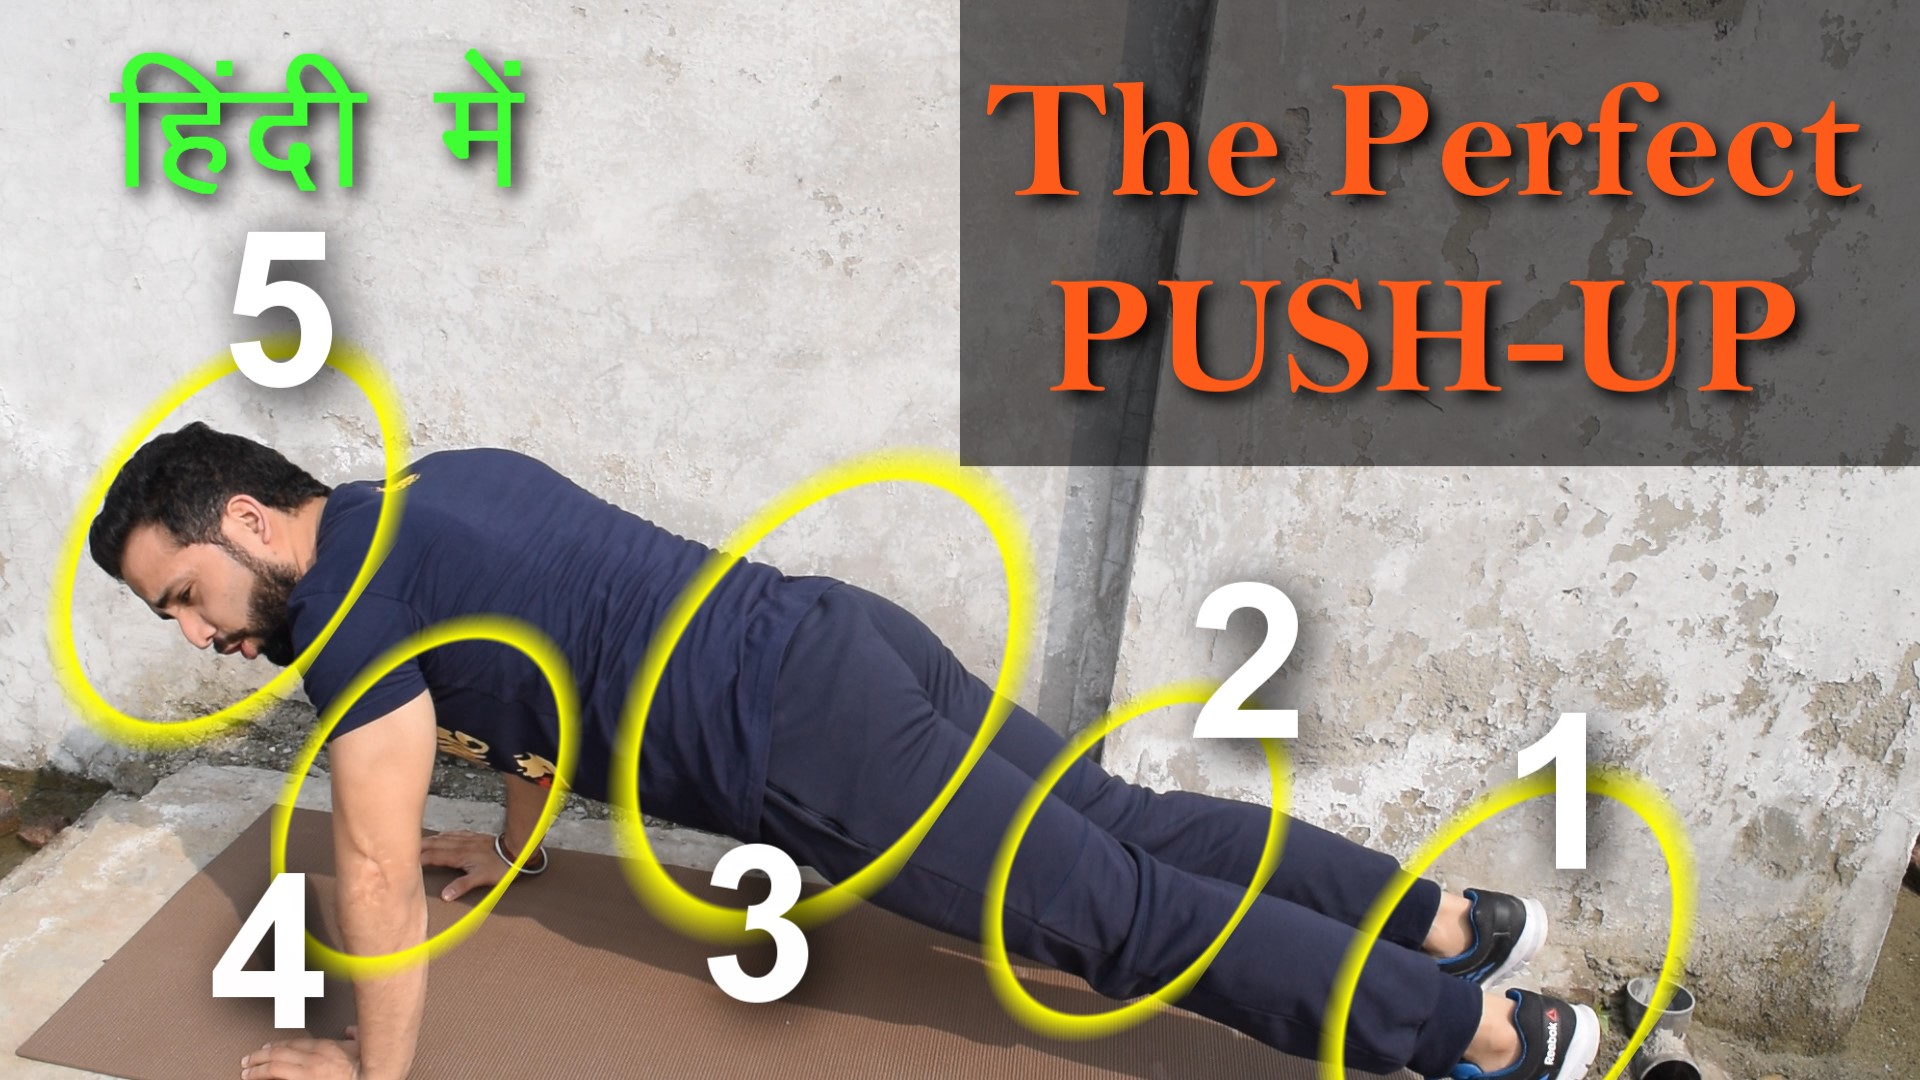 5 Step Push-Up Tutorial | Head-to-Toe Push-Up Technique